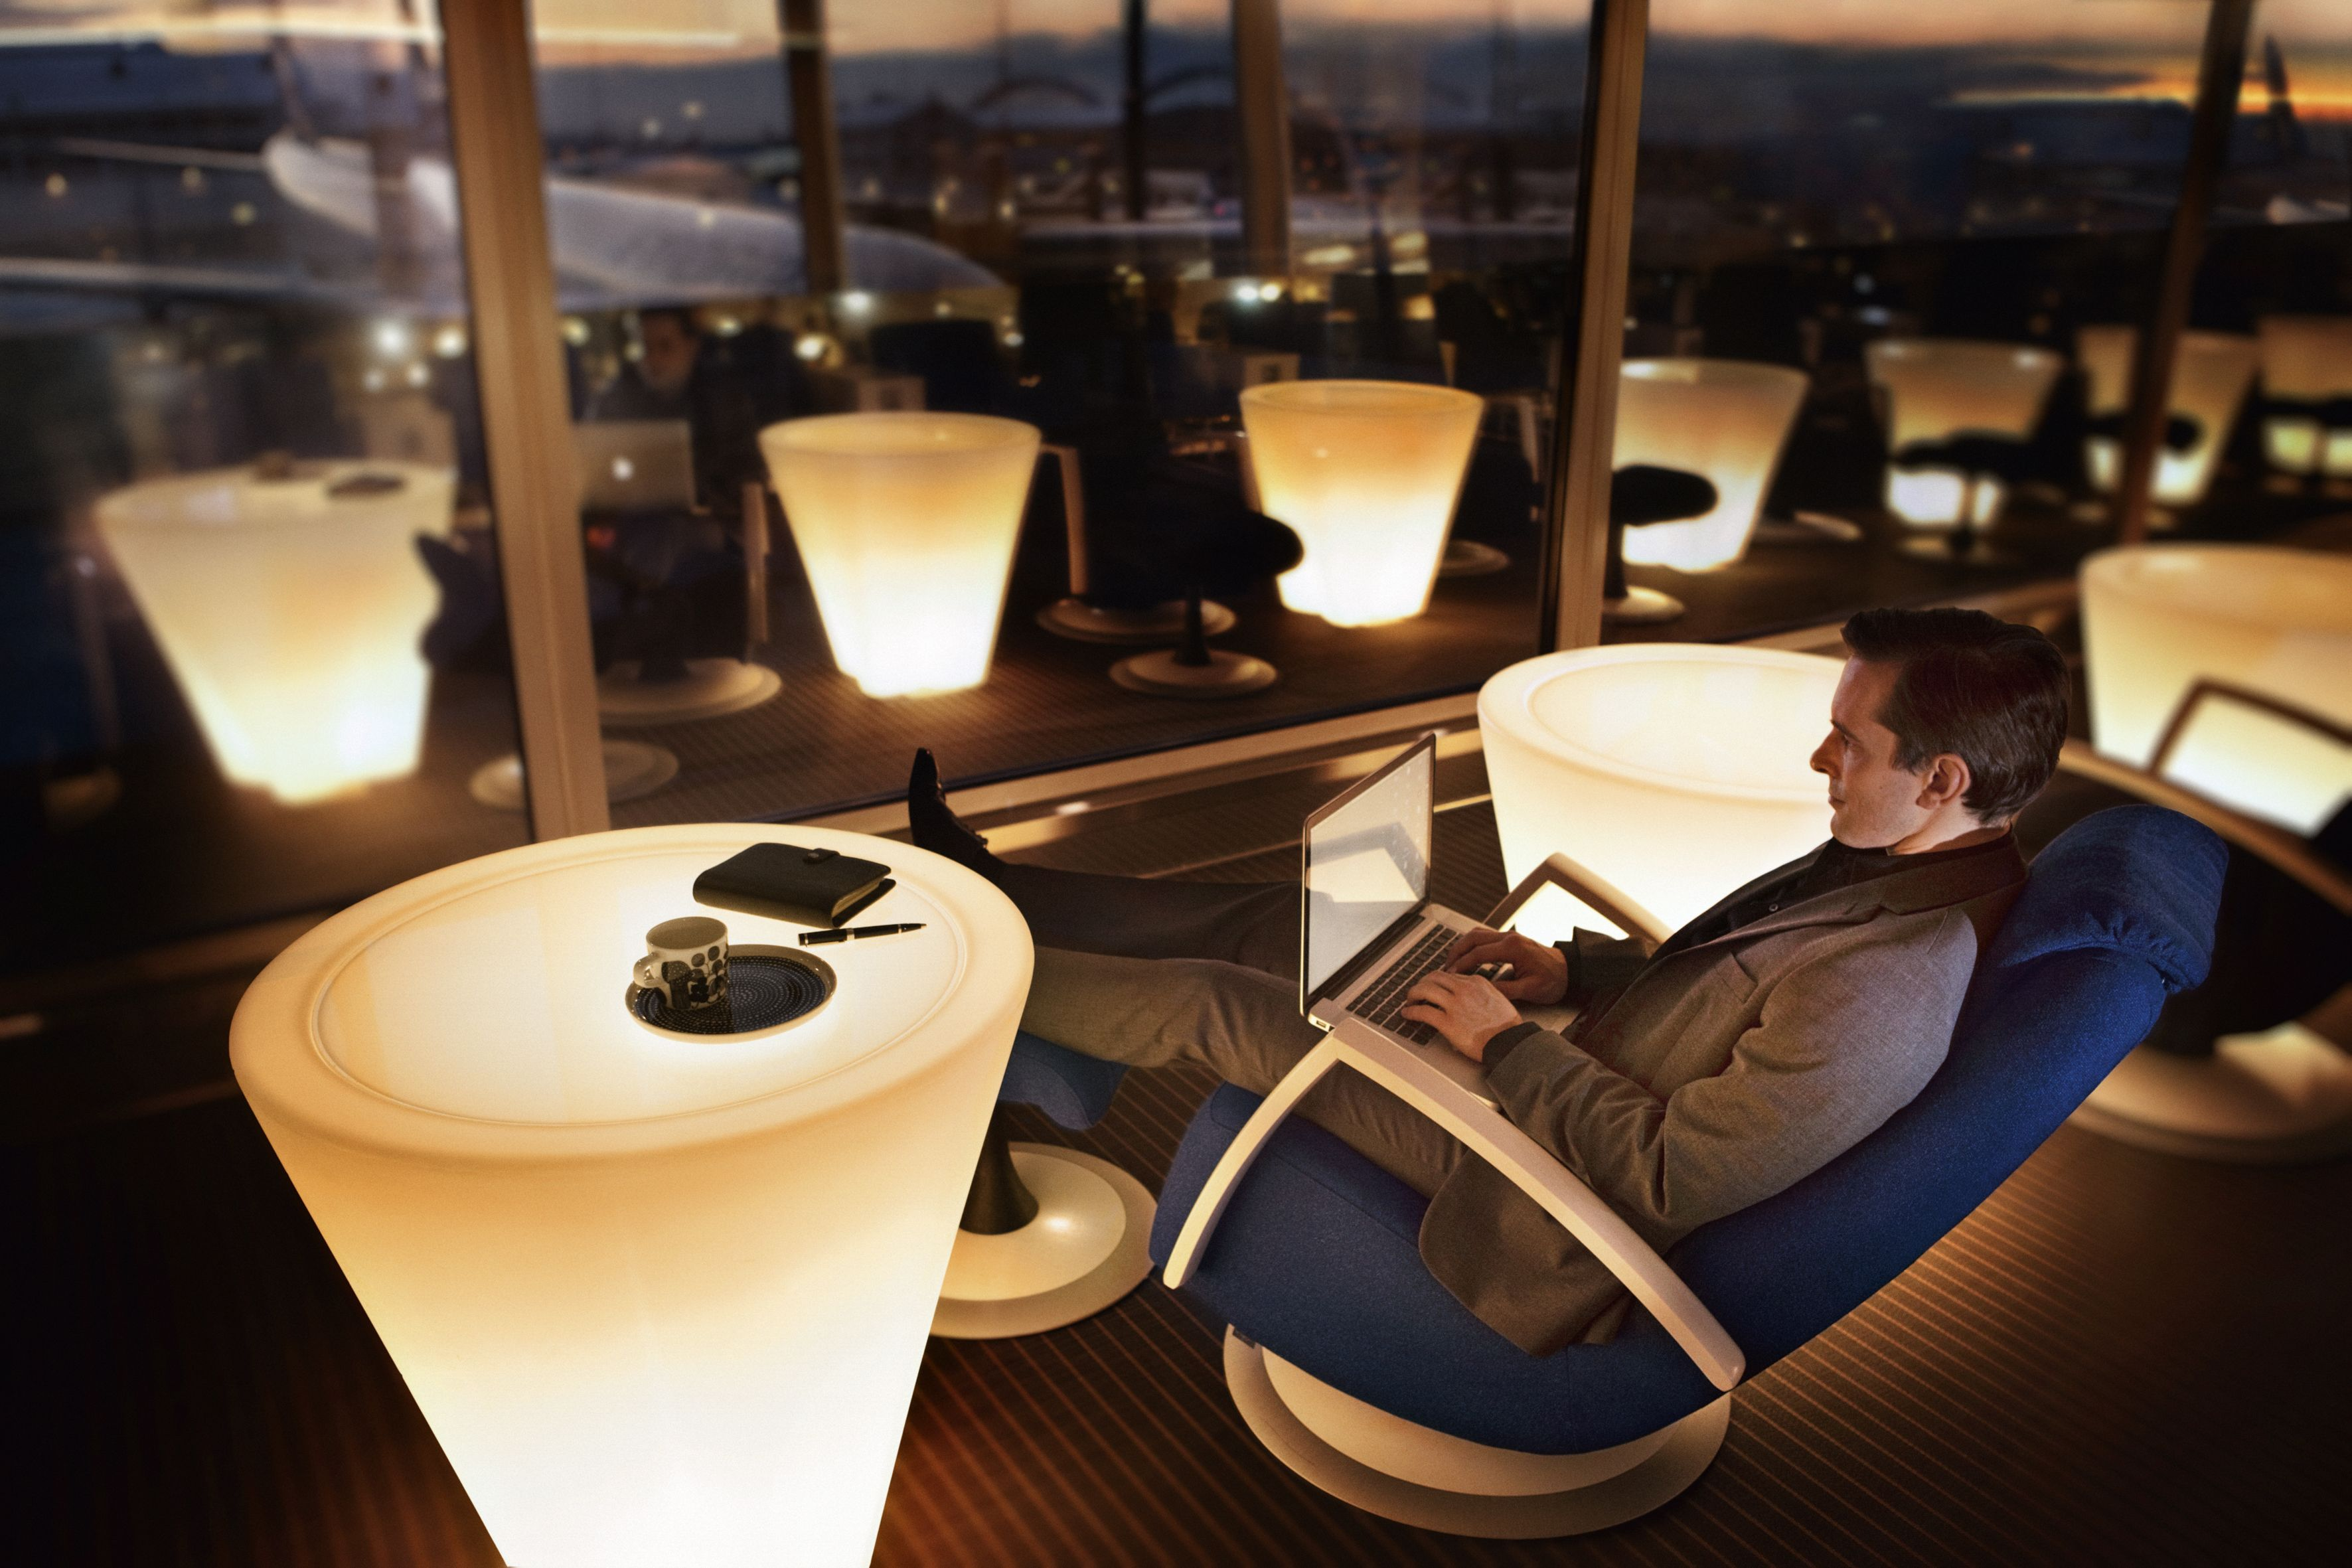 Lounge Pass Airport Exclusi ve Access Luxury LocalBini BiniBlog Travel Gift Guide Ultimate